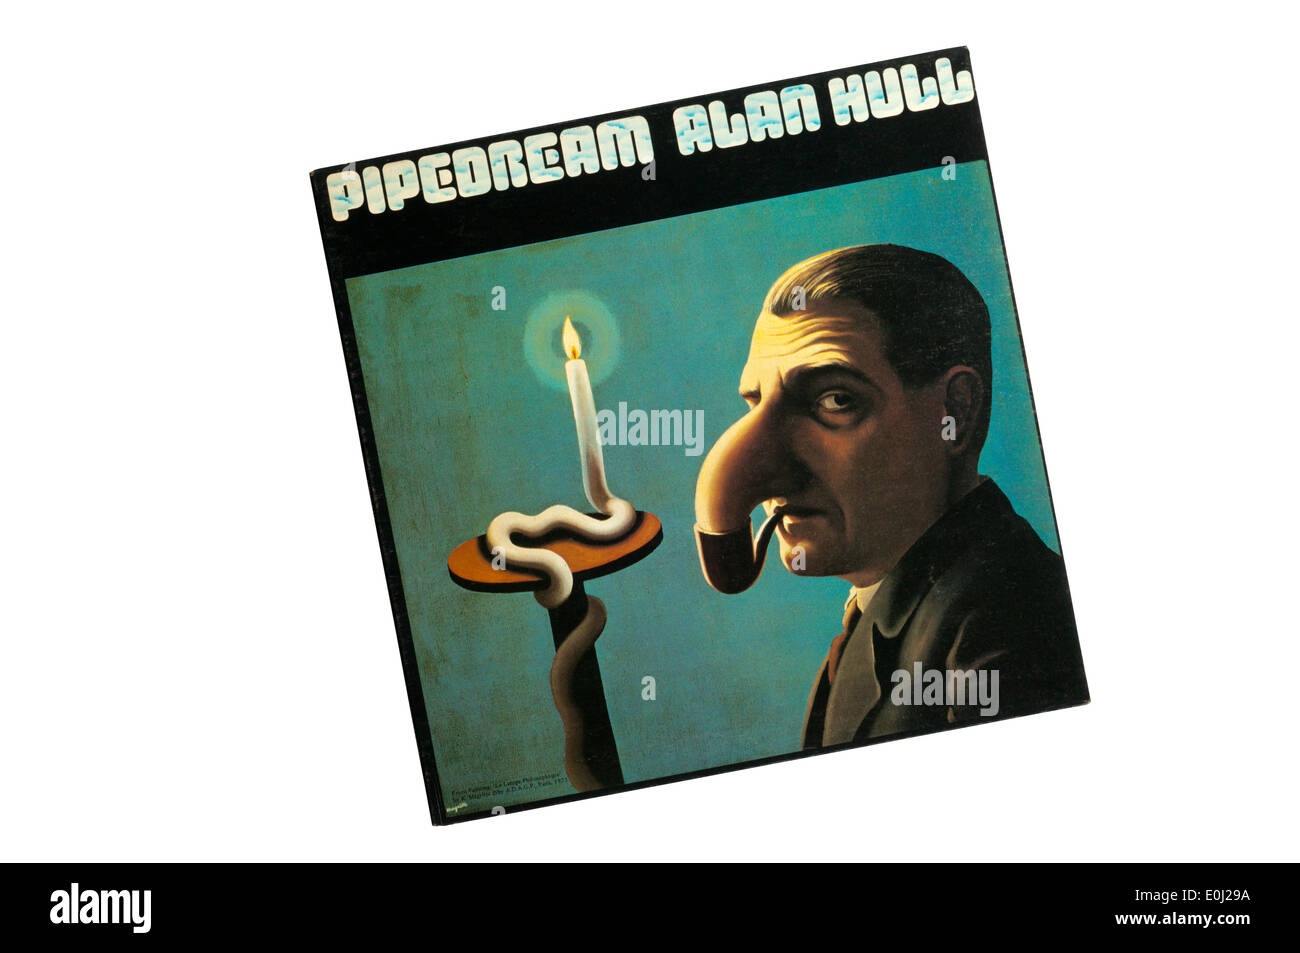 Pipedream was first solo album by Lindisfarne singer Alan Hull, released in 1973. Cover shows La Lamp Philosophique by Magritte. - Stock Image